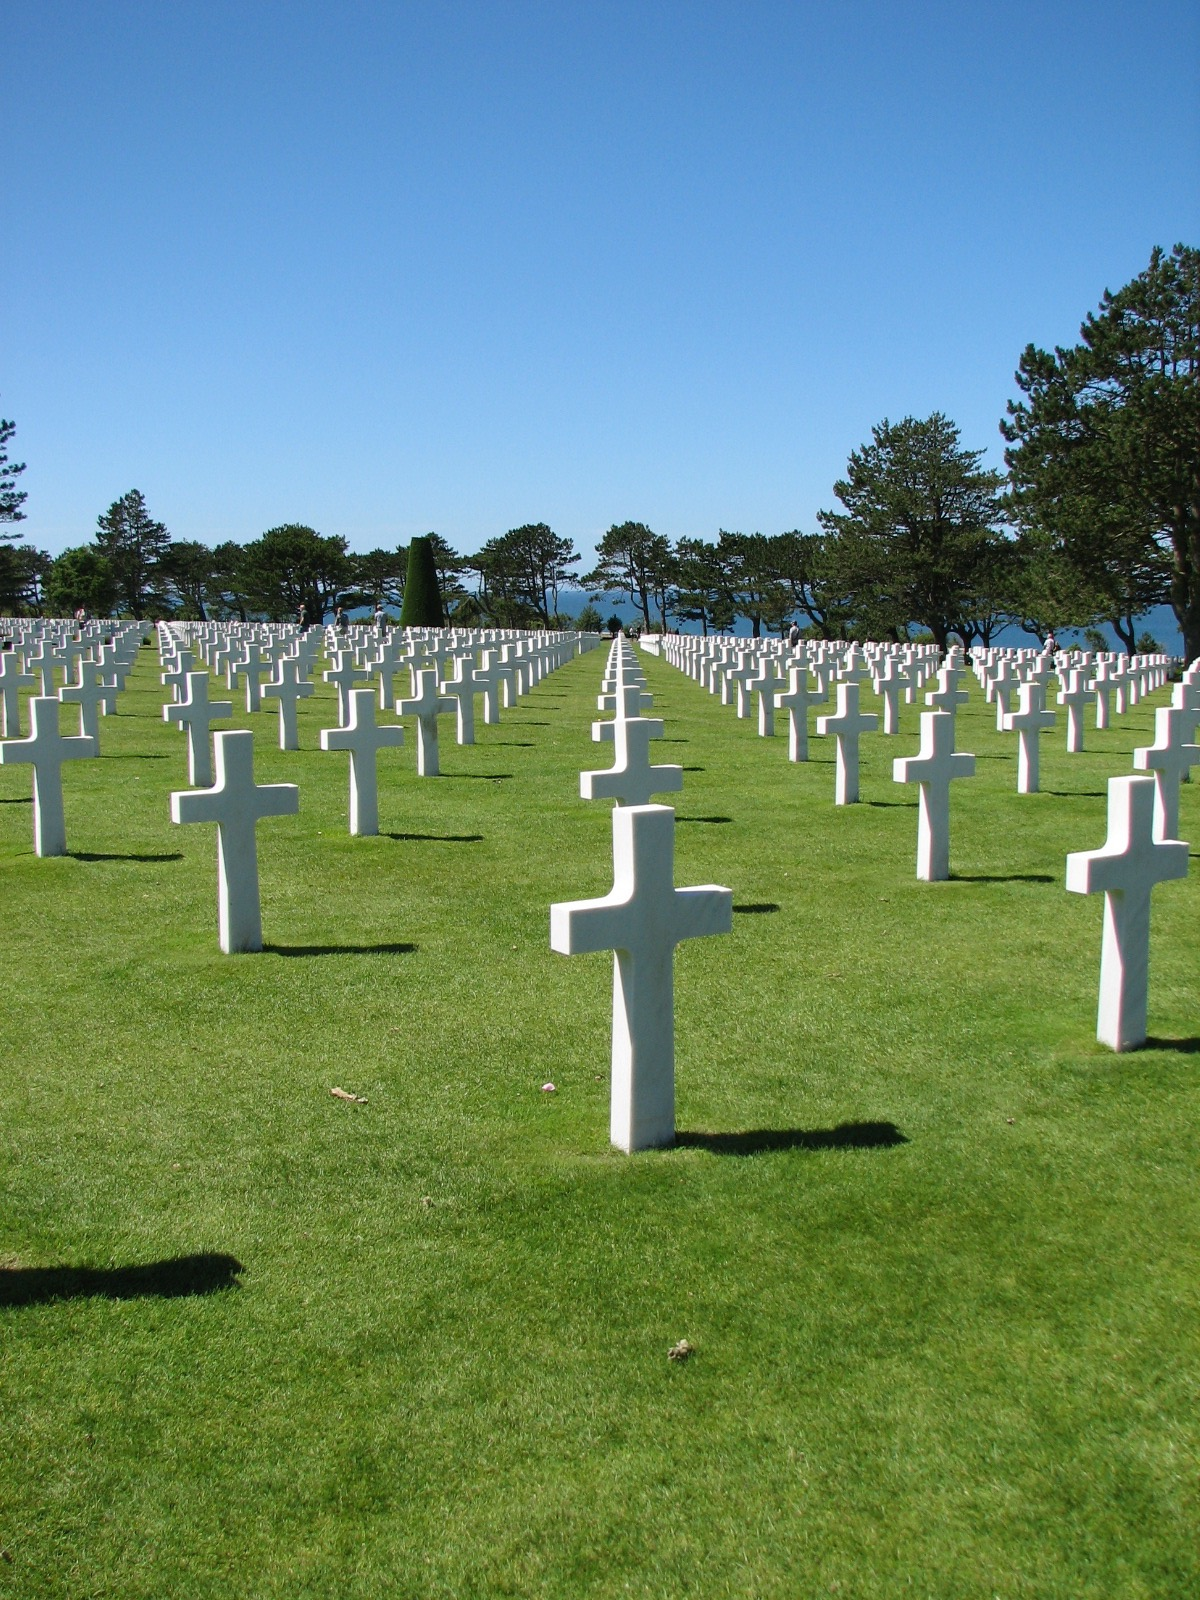 The American graves - 1 fallen in each